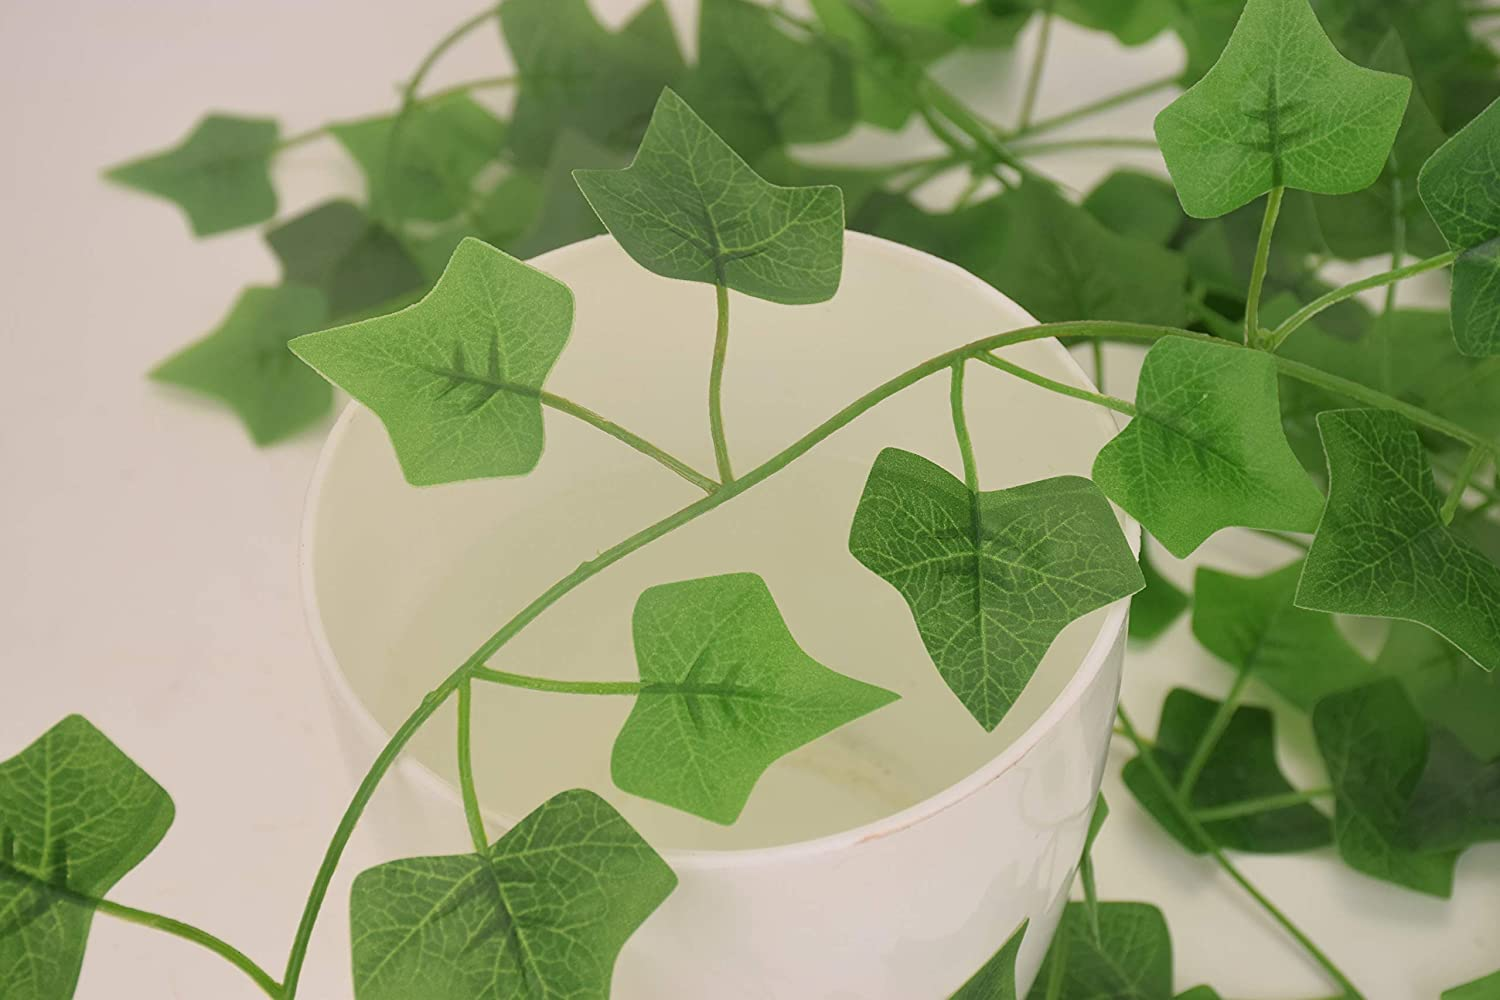 50% Off Coupon – 84Ft 12 Pack Artificial Ivy Fake Plants with 200 LED String Lights